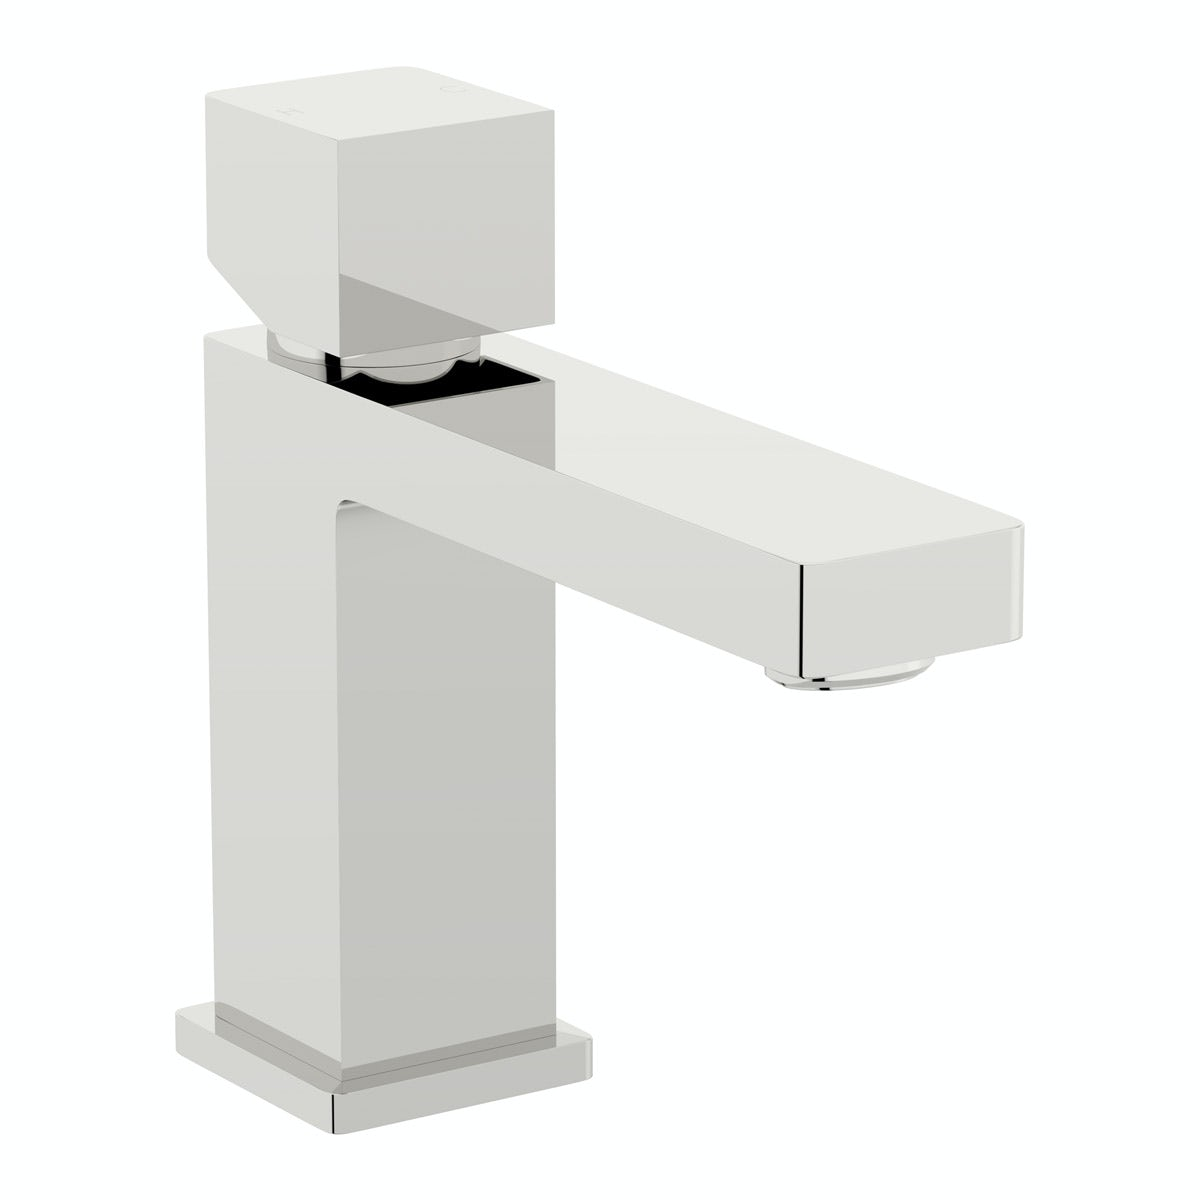 Mode Austin basin mixer tap offer pack